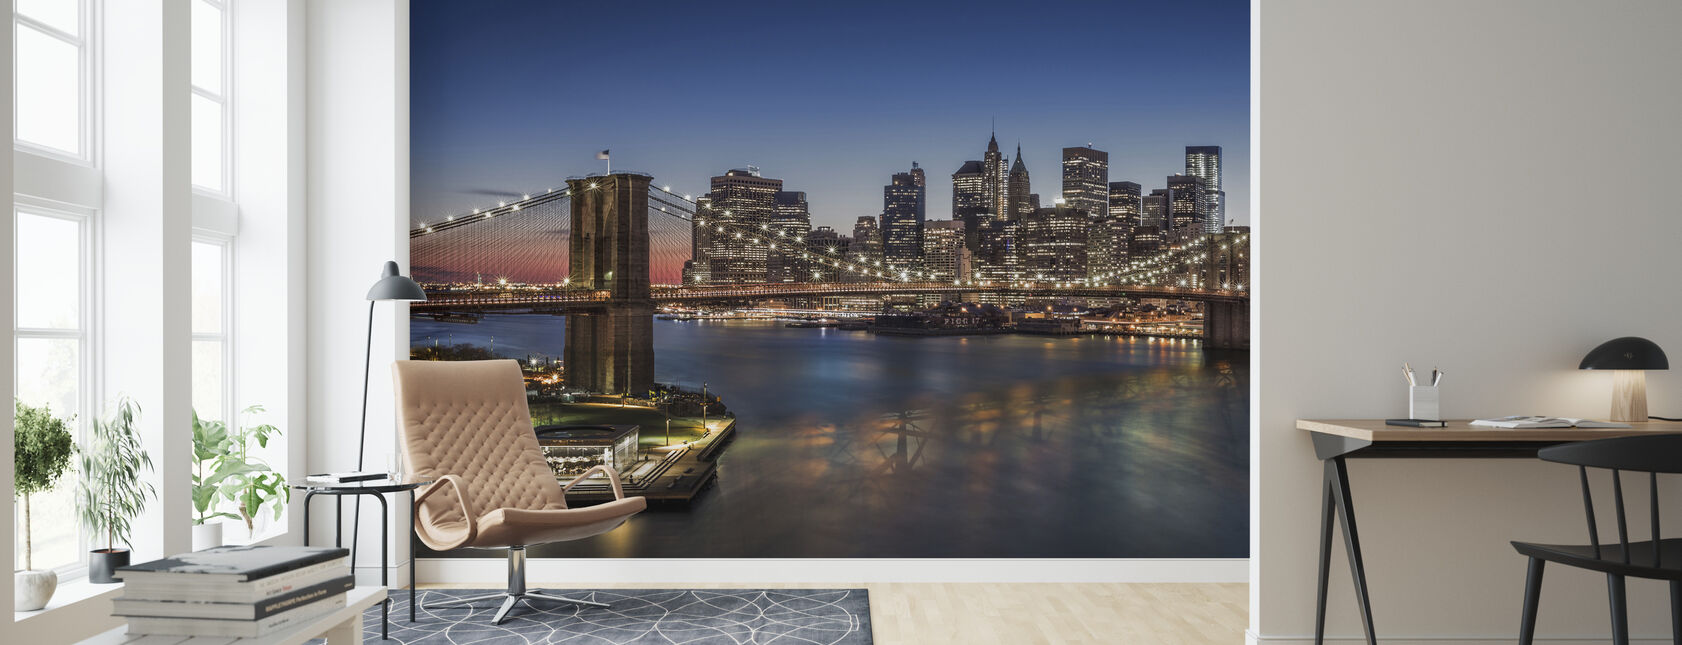 Brooklyn Bridge und Downtown Manhattan - Tapete - Wohnzimmer